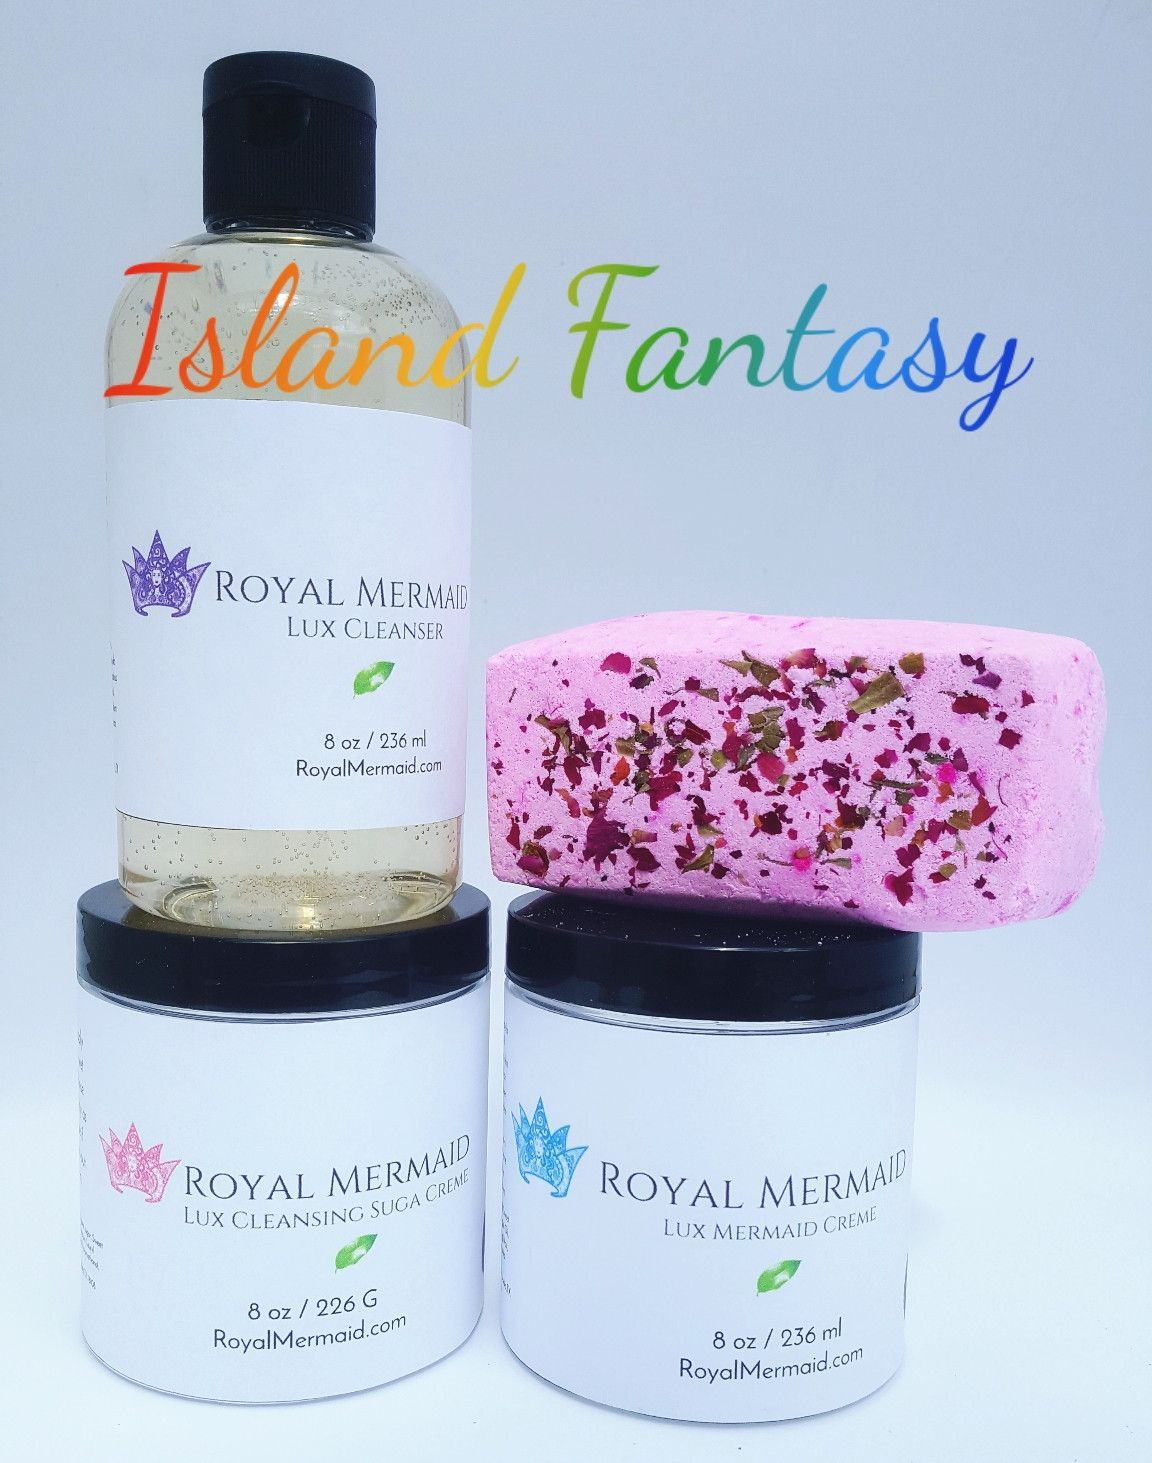 Island Fantasy Skincare Collection  Create a life that you don't need a vacation from with Royal Mermaid & The Captain! We specialize in personalized products and incredible customer service. RoyalMermaid.com #royalmermaid #thecaptain #nomoredryskin #soothing #eczema #hormonesafe #pcossafe #pcos #psoriasis #shopsmall #gifts #birthday #bathfizzies #cleanser #skinpolish #mermaid #mermaidcreme #seasoak